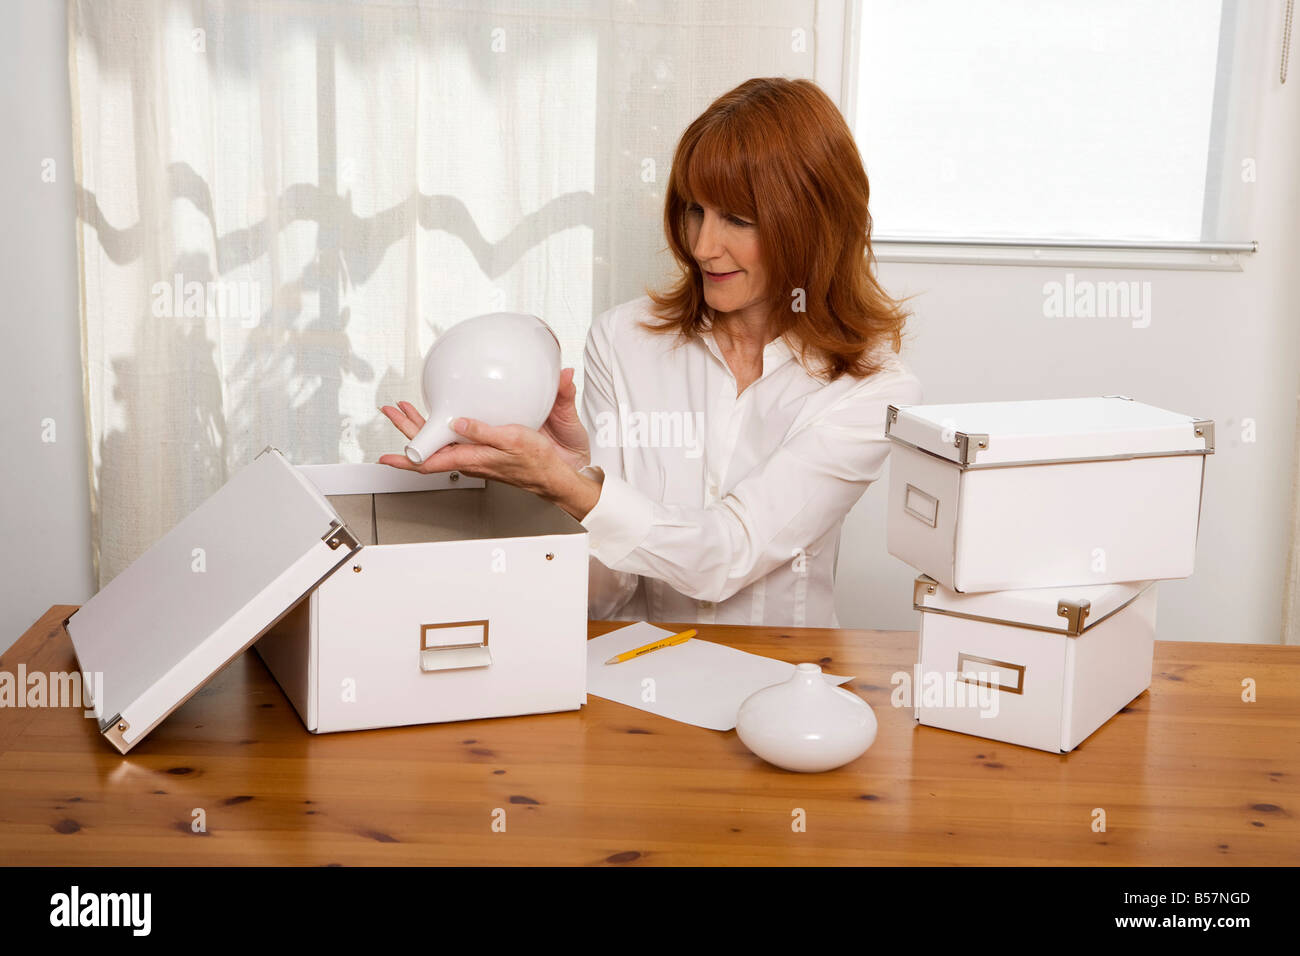 red haired woman 40 -50 years organizes objects in the house - Stock Image